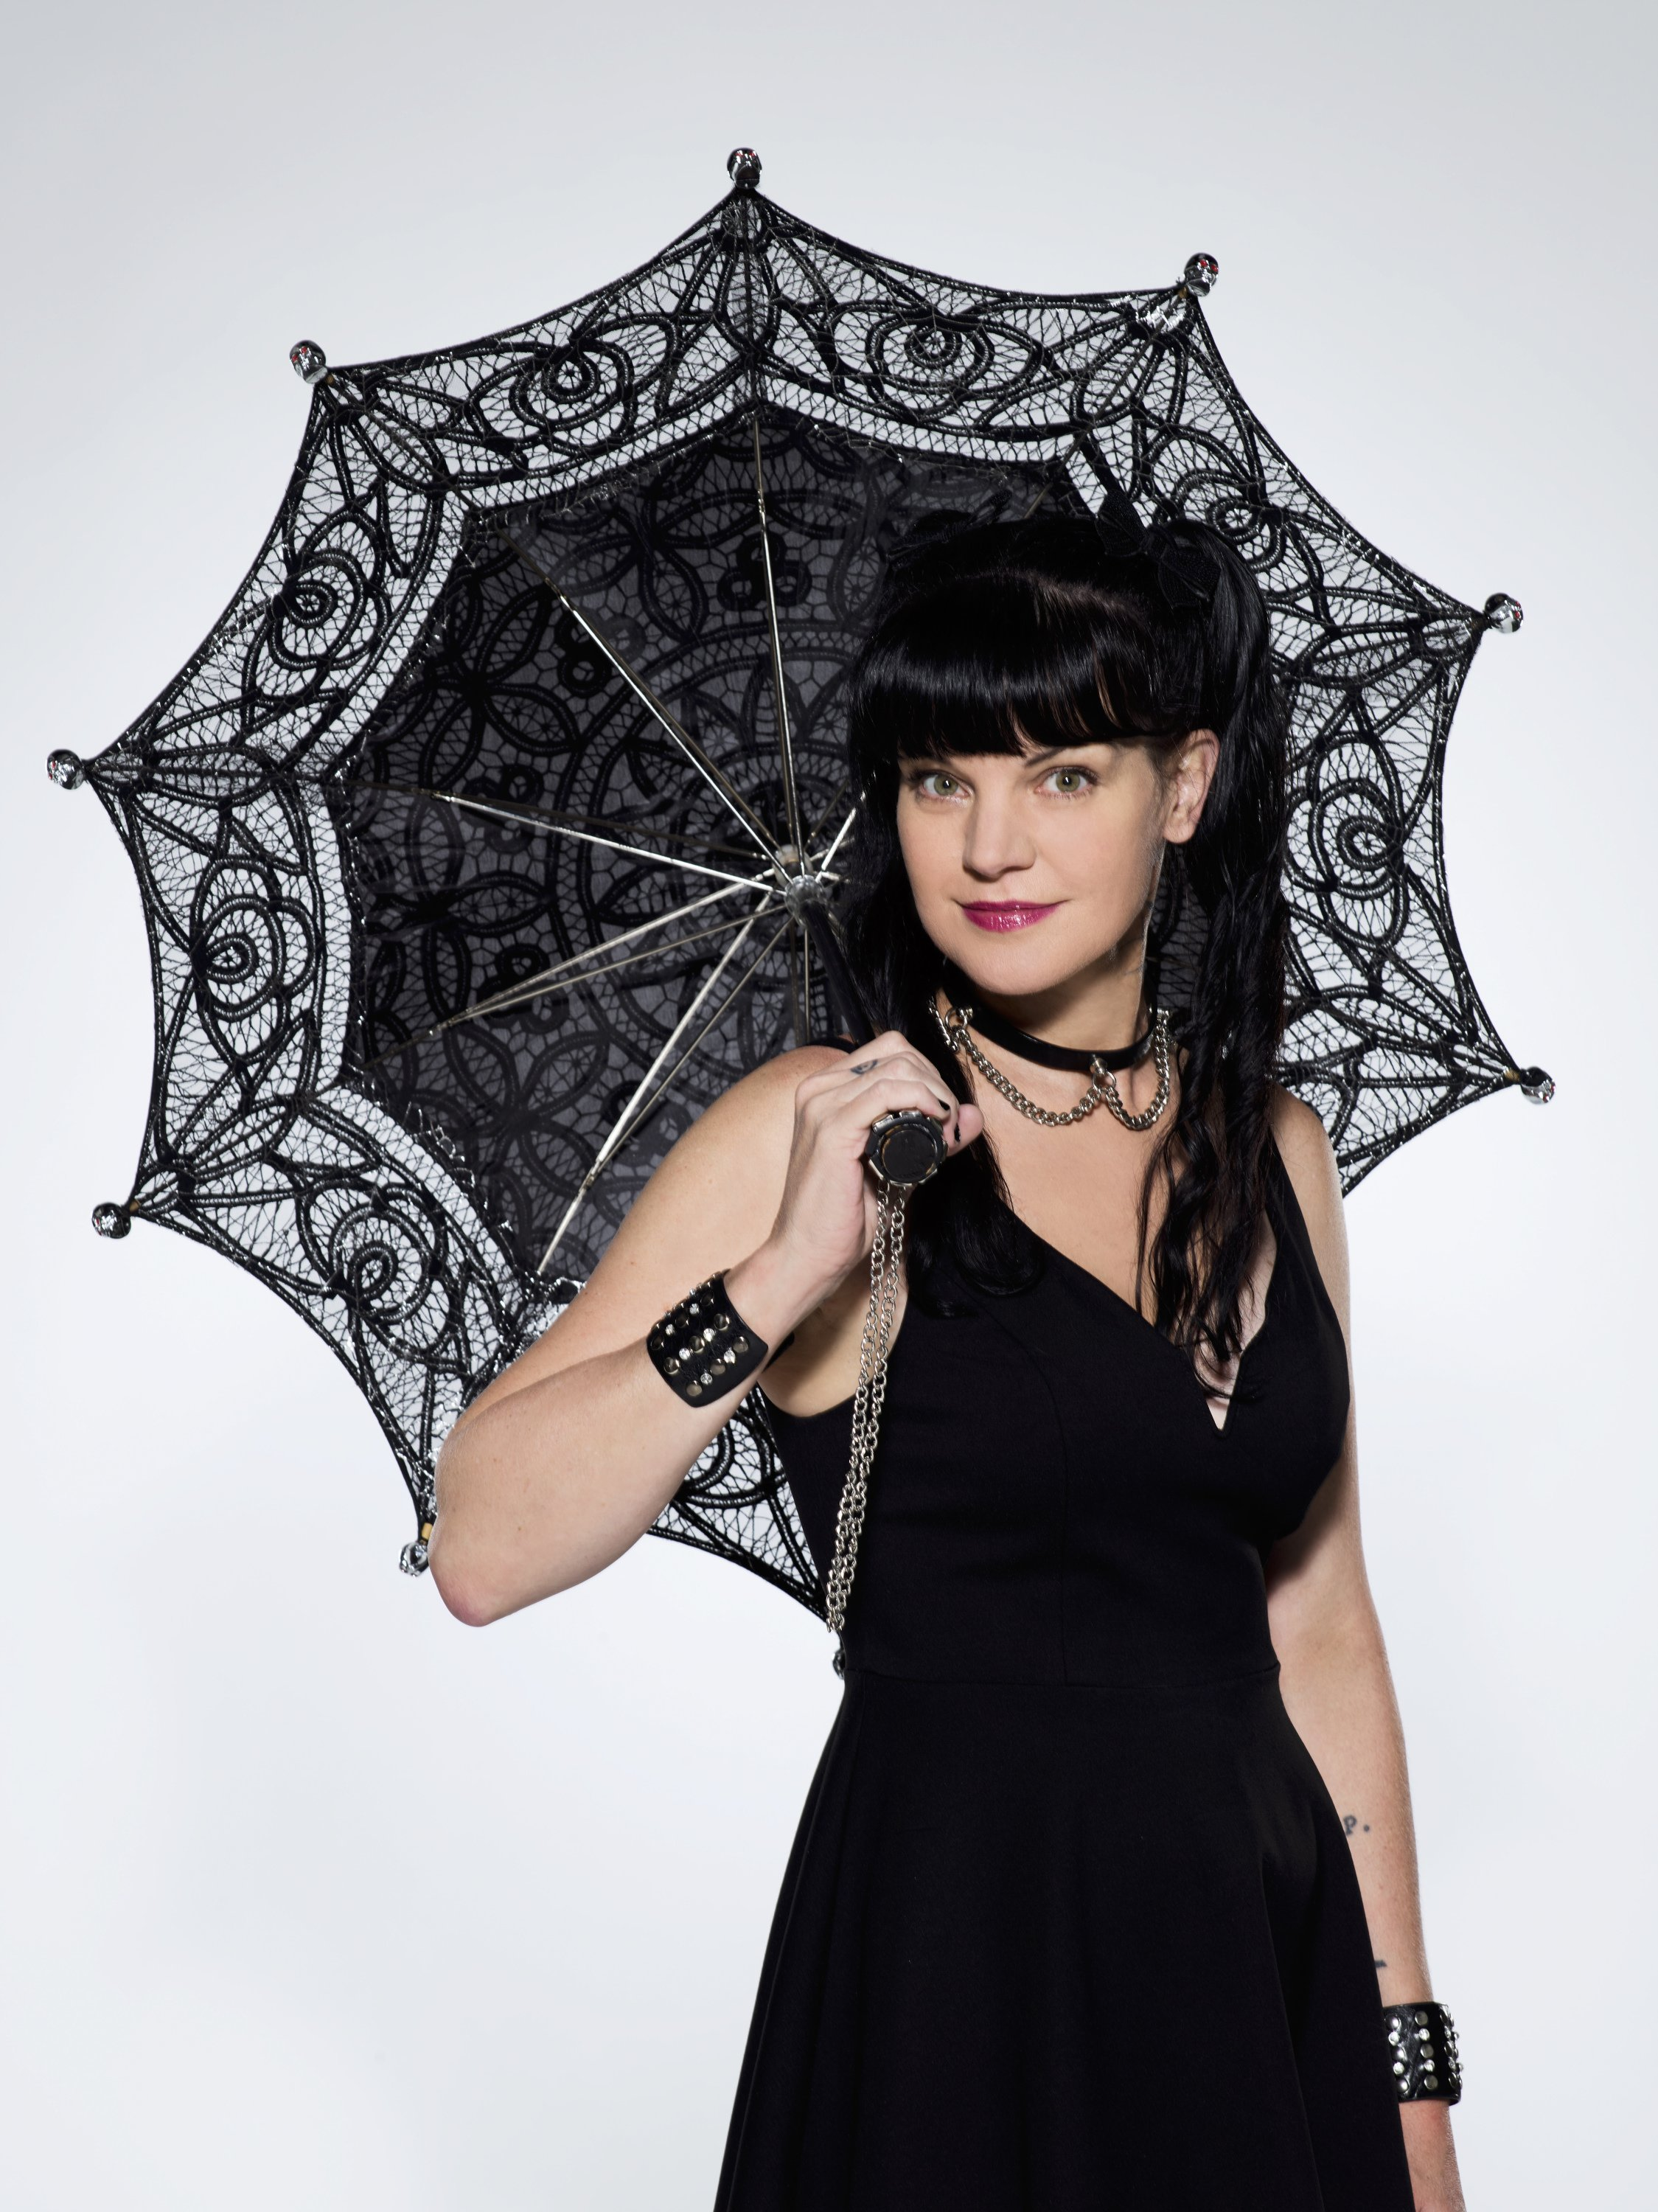 Pauley Perrette on the set of the CBS series NCIS, scheduled to air on the CBS Television Network. |Photo: Getty Images